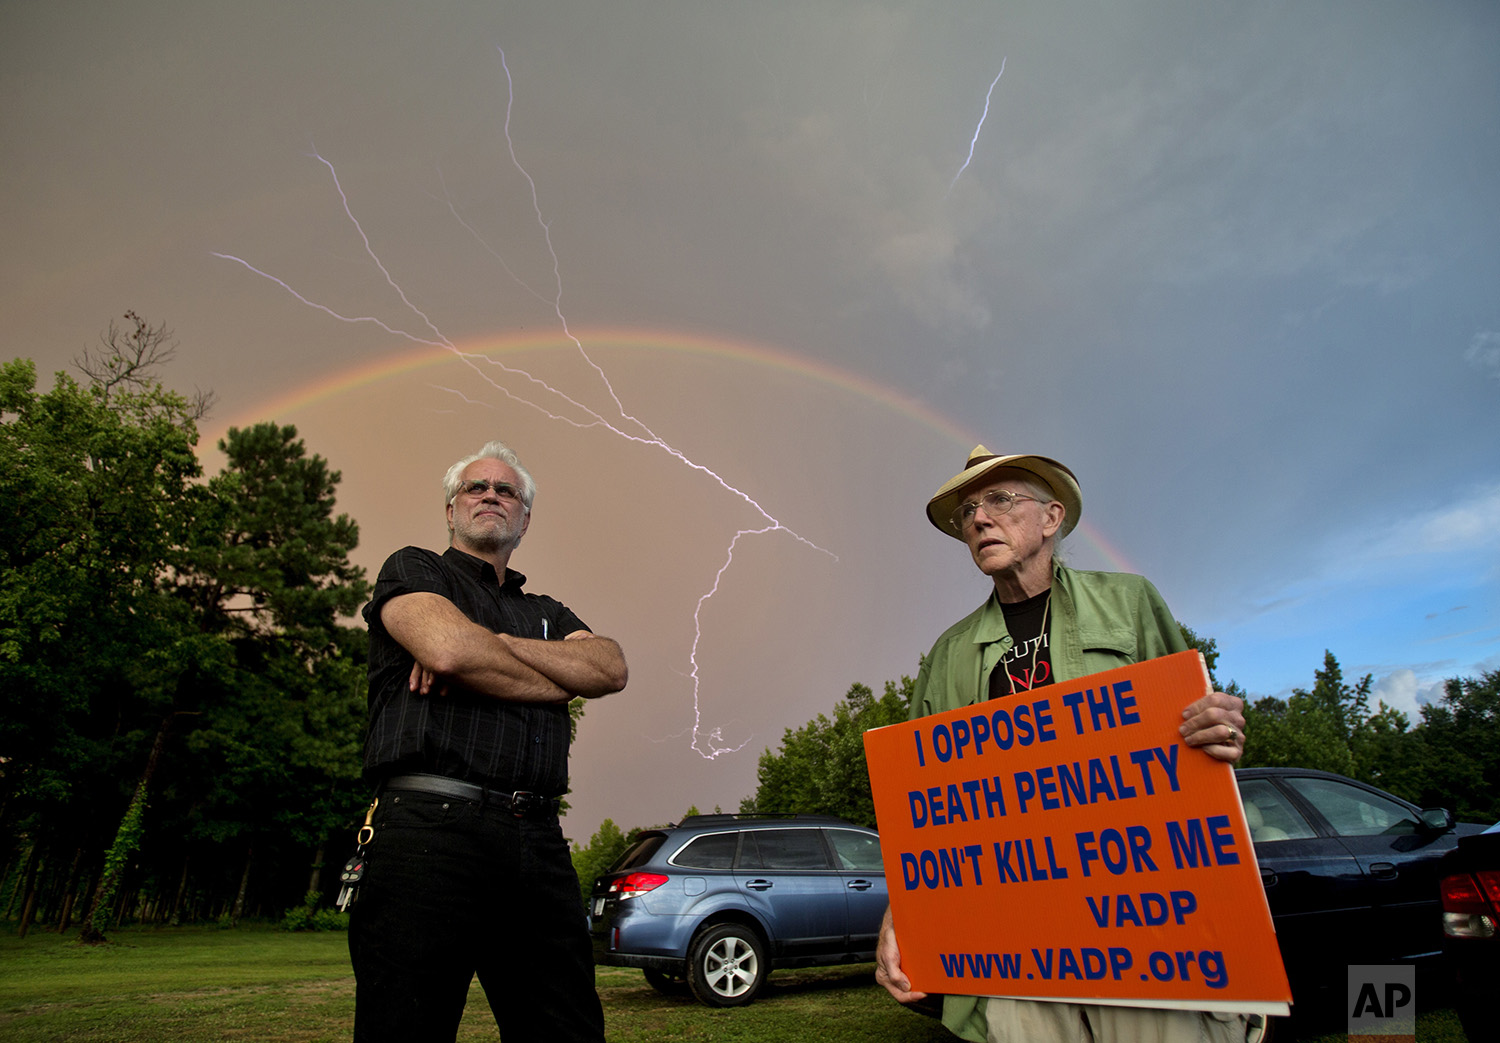 Dale Brumfield, of Doswell, Va., left, stands with Jack Payden-Travers, of Lynchburg, Va., on the day of the execution of William Morva in Jarrett, Va., Thursday, July 6, 2017. (Shaban Athuman/Richmond Times-Dispatch via AP)